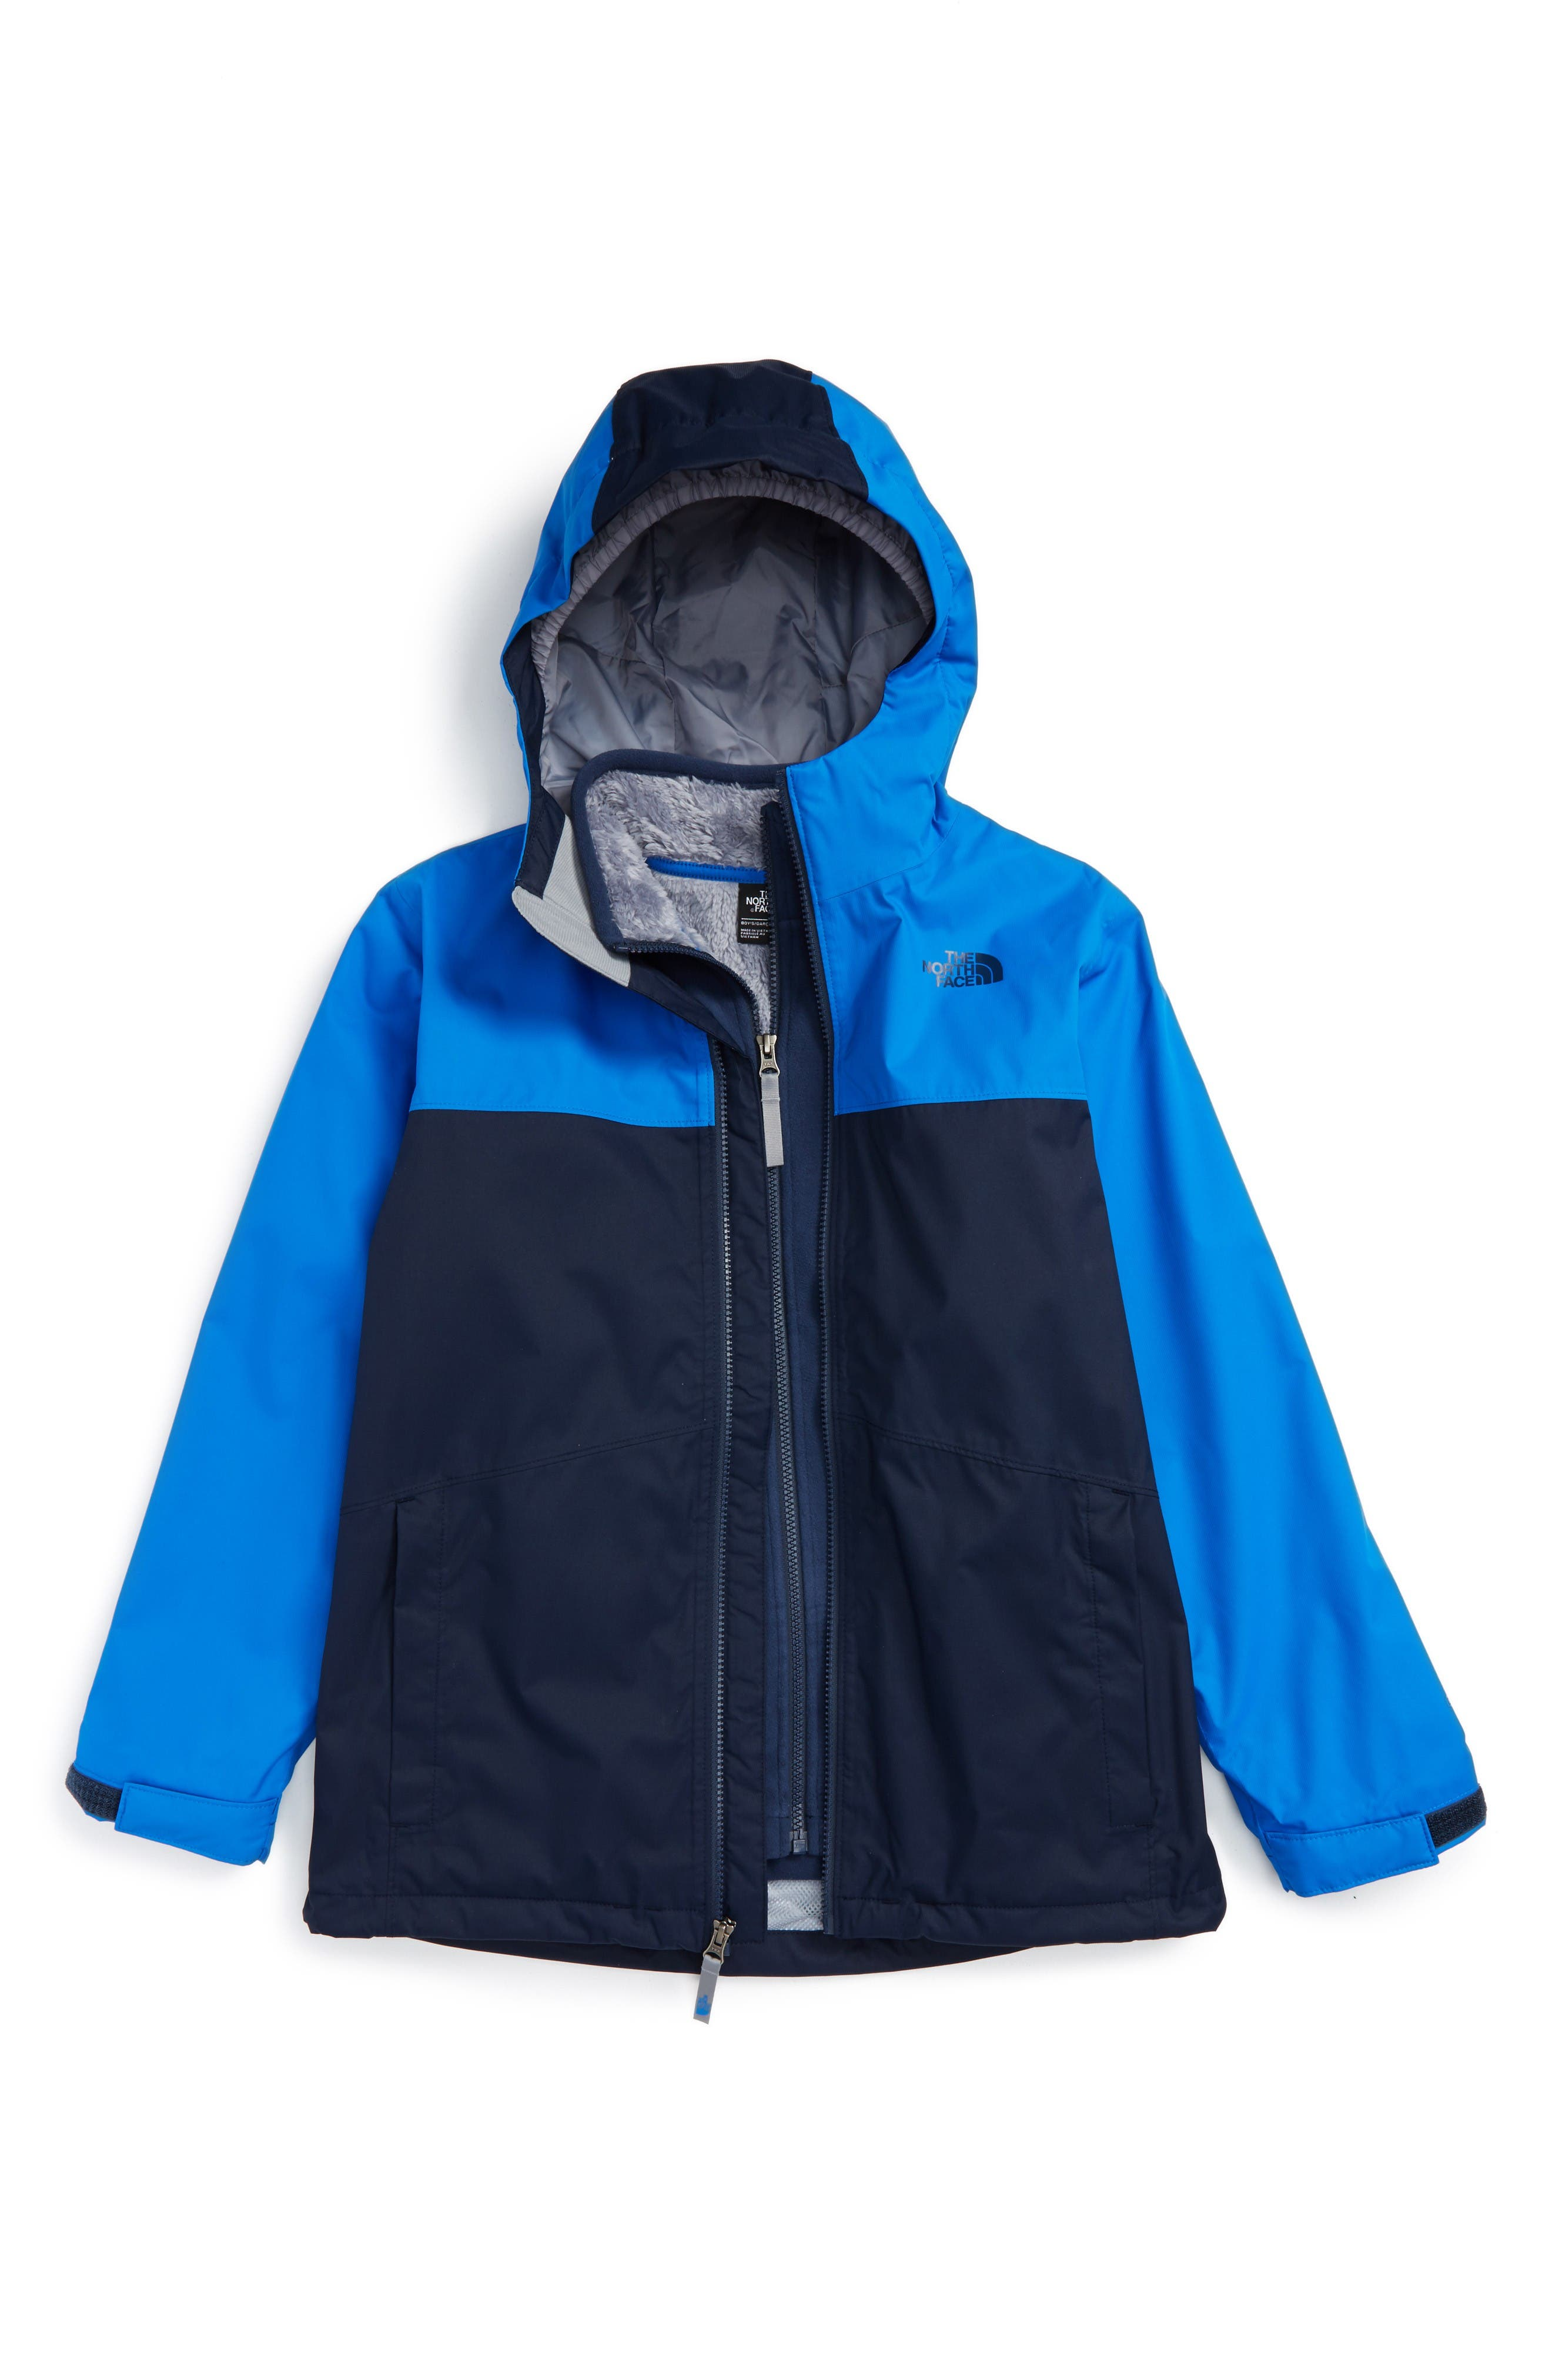 Alternate Image 1 Selected - The North Face Chimborazo Triclimate® Waterproof 3-in-1 Jacket (Big Boys)